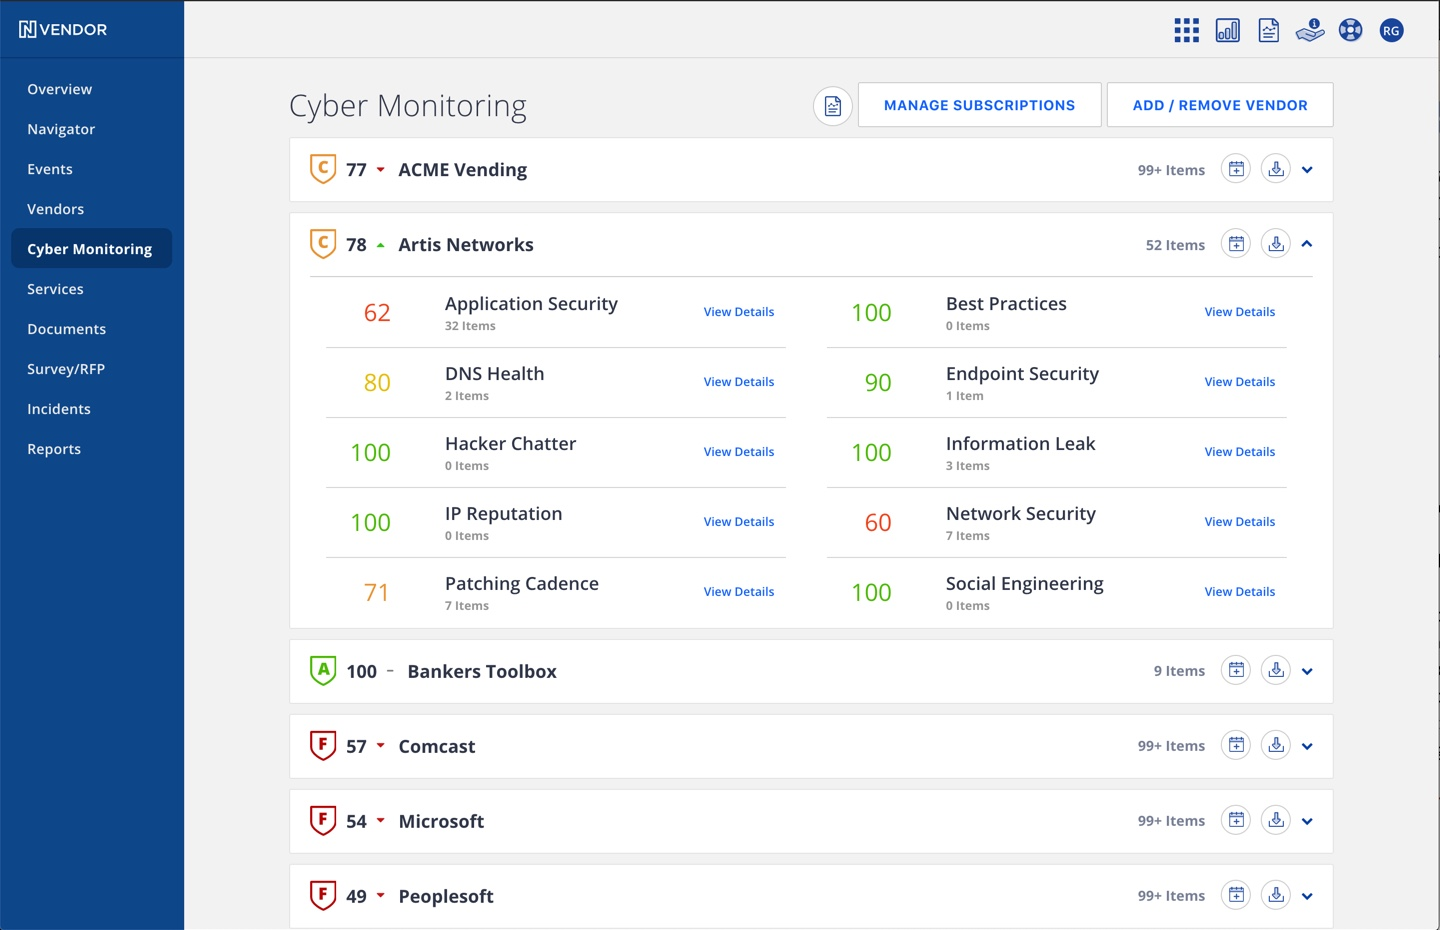 Nvendor Cyber Monitoring